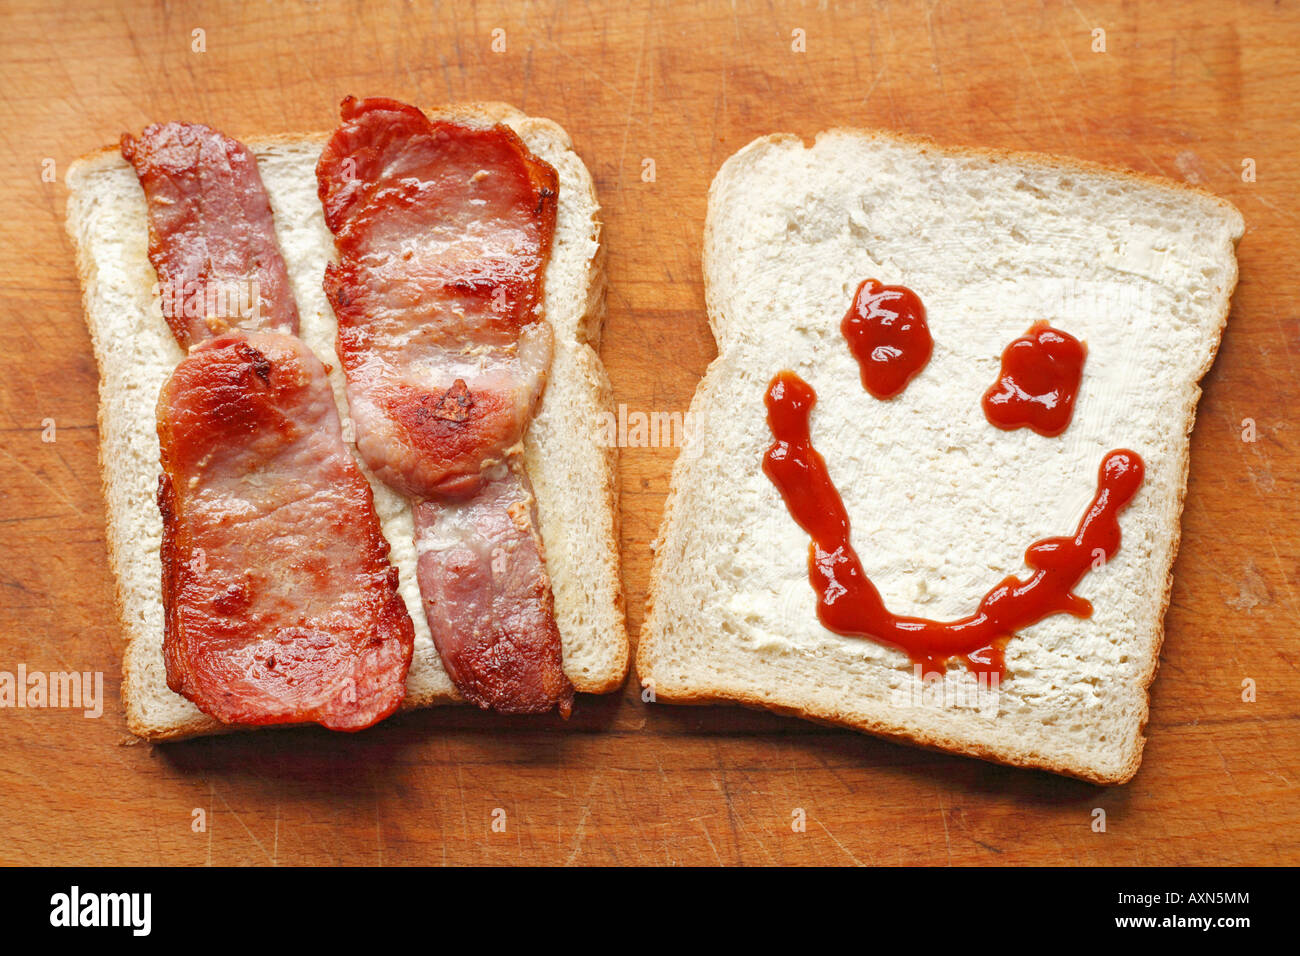 Making A Bacon Sandwich With A Smiley, Ketchup Face